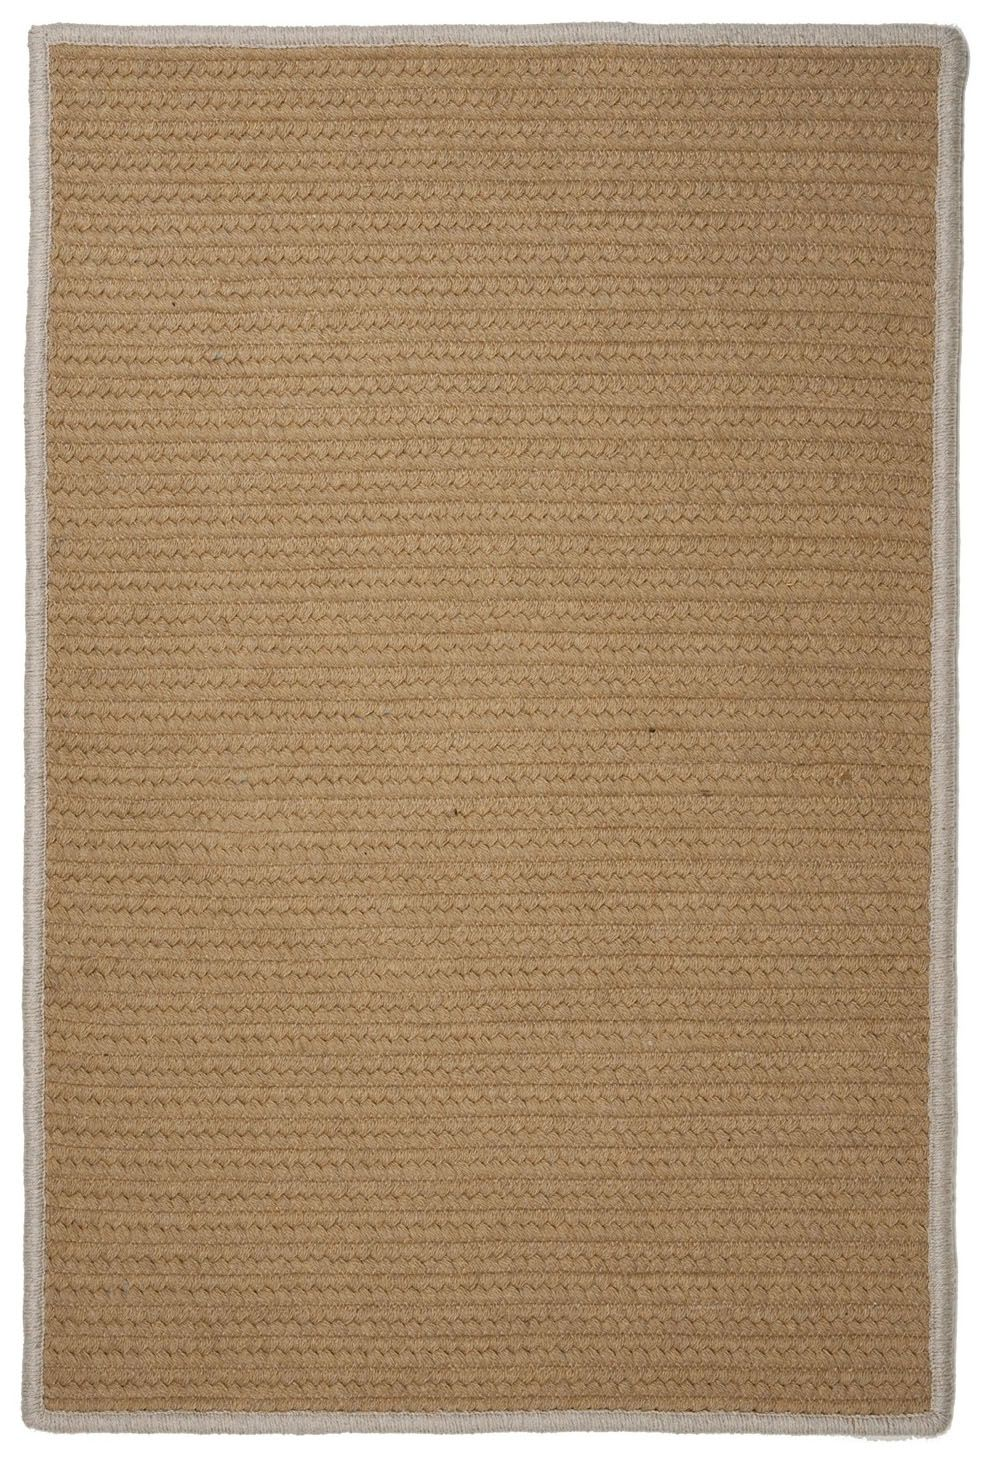 colonial mills renaissance braided area rug collection